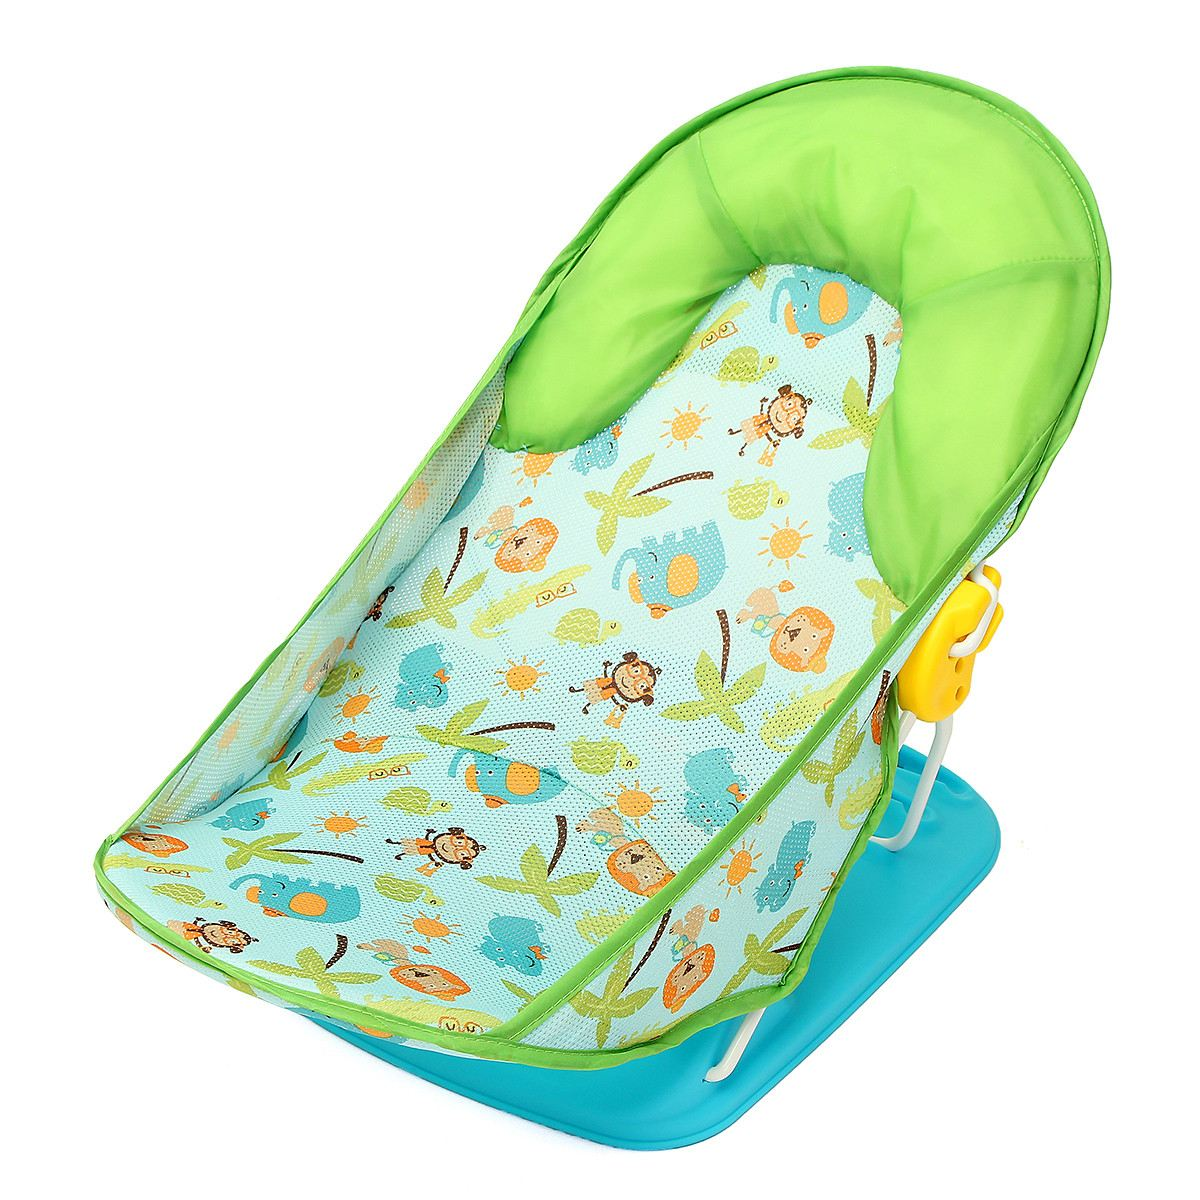 Newborn Infant Baby Safety Bath Tub Baby Toddler Bath Shower Support Seat Chair Soft Comfort Bath Supplies Foldable Washable